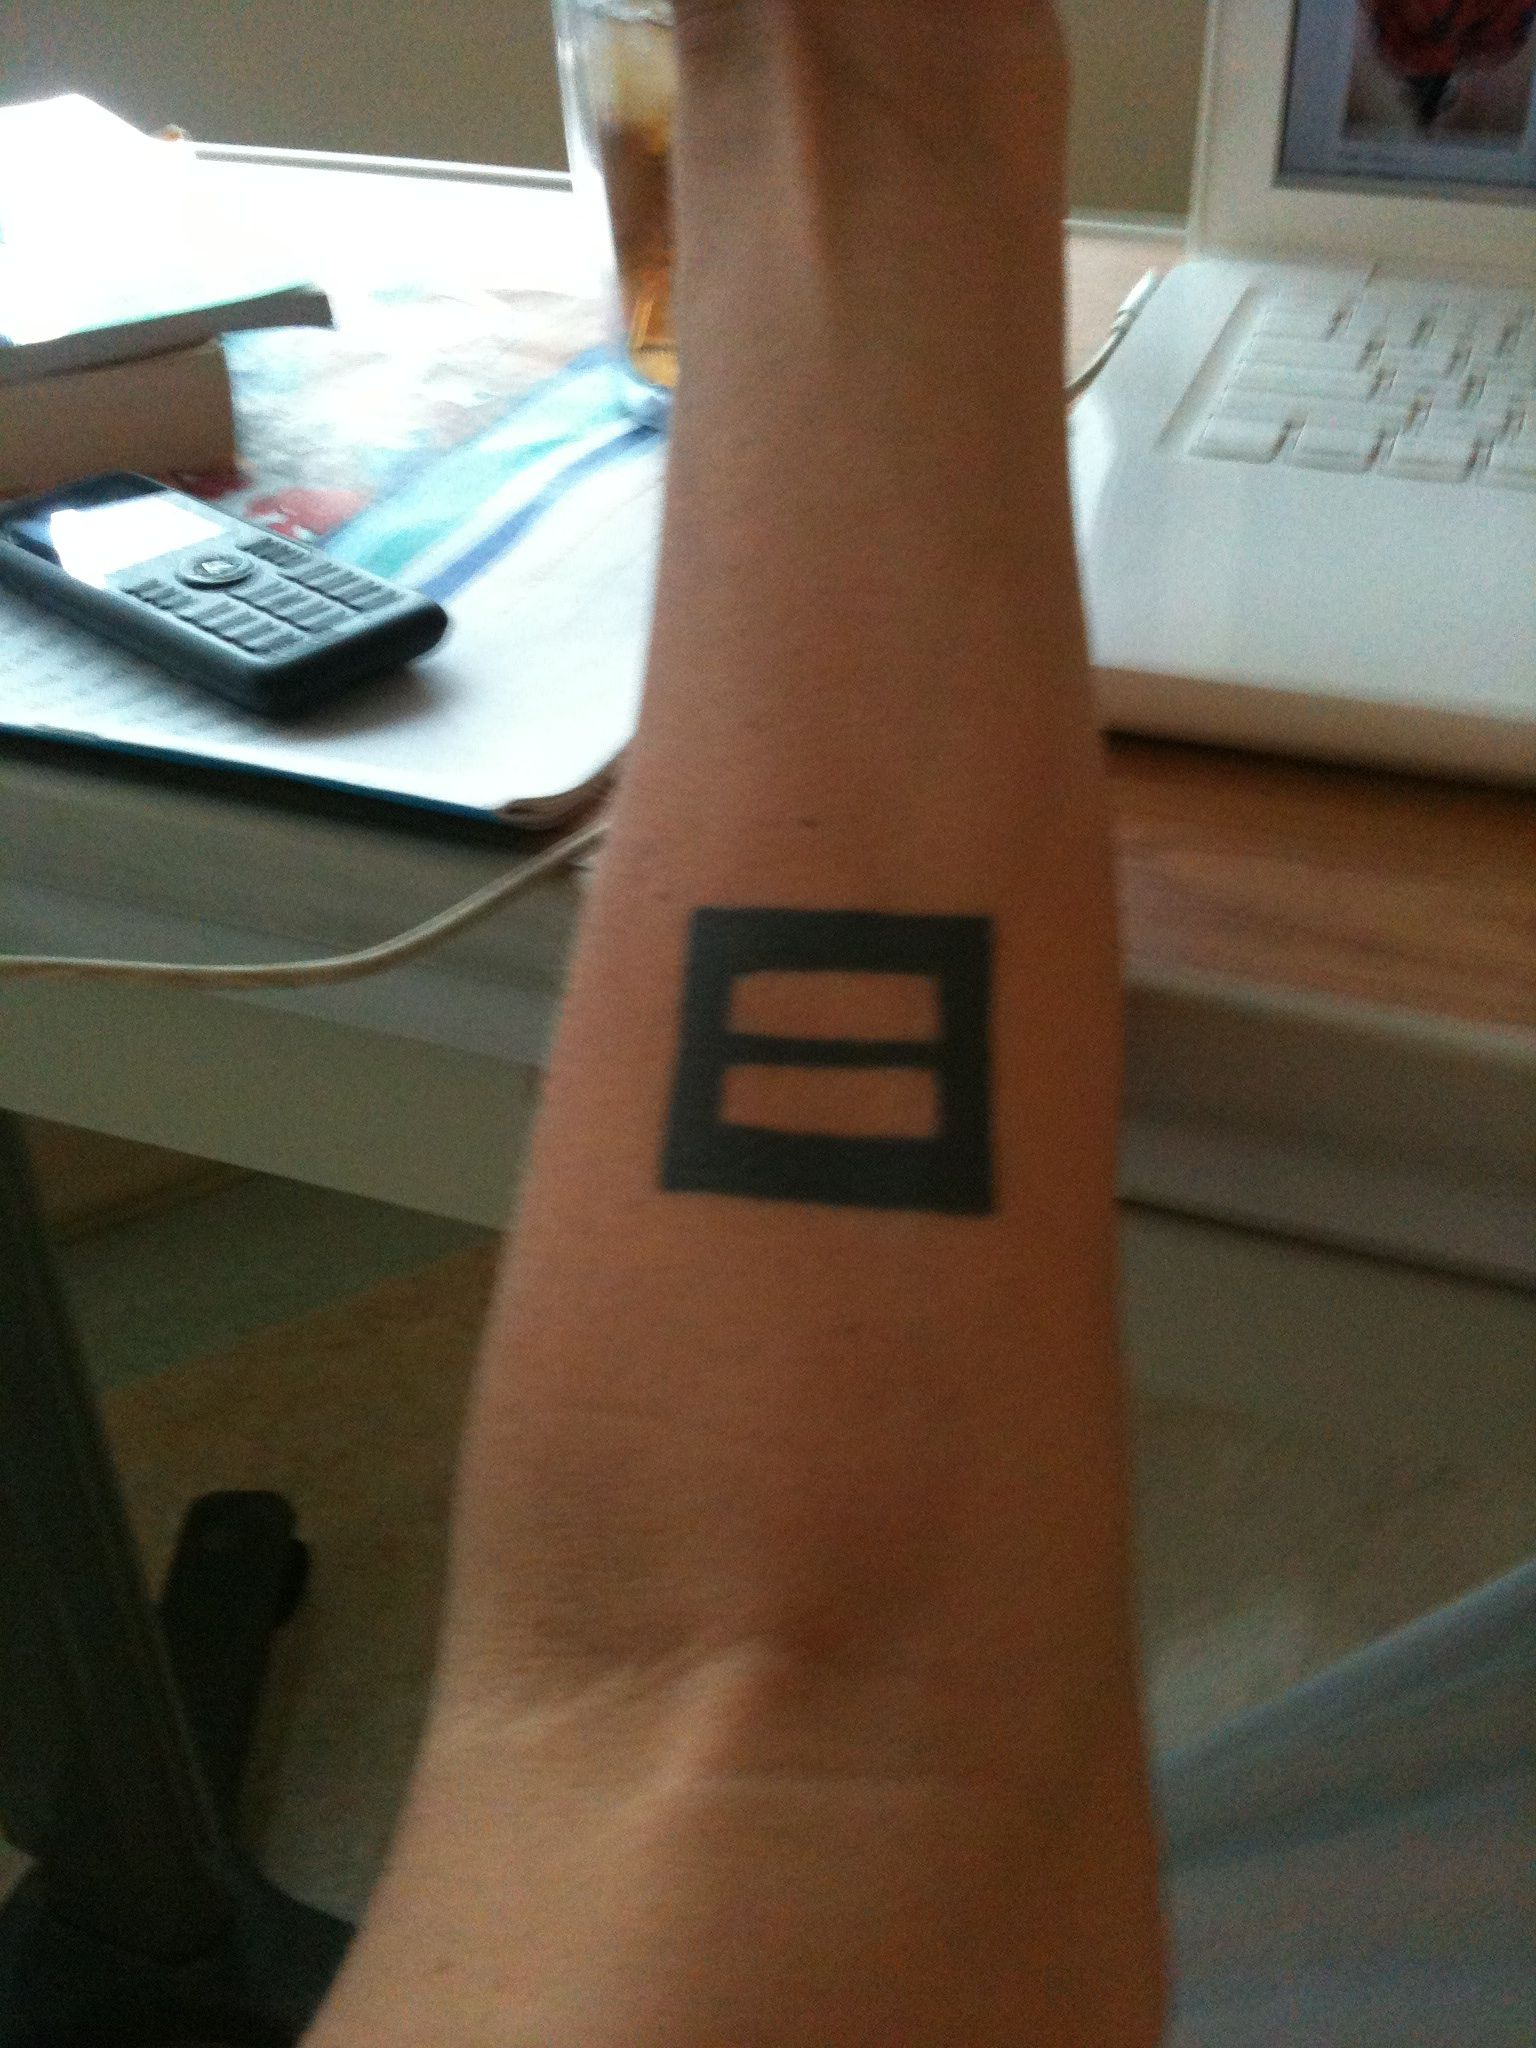 My Equal Rights Tattoo Equality Tattoos Tattoos Tattoos With Meaning